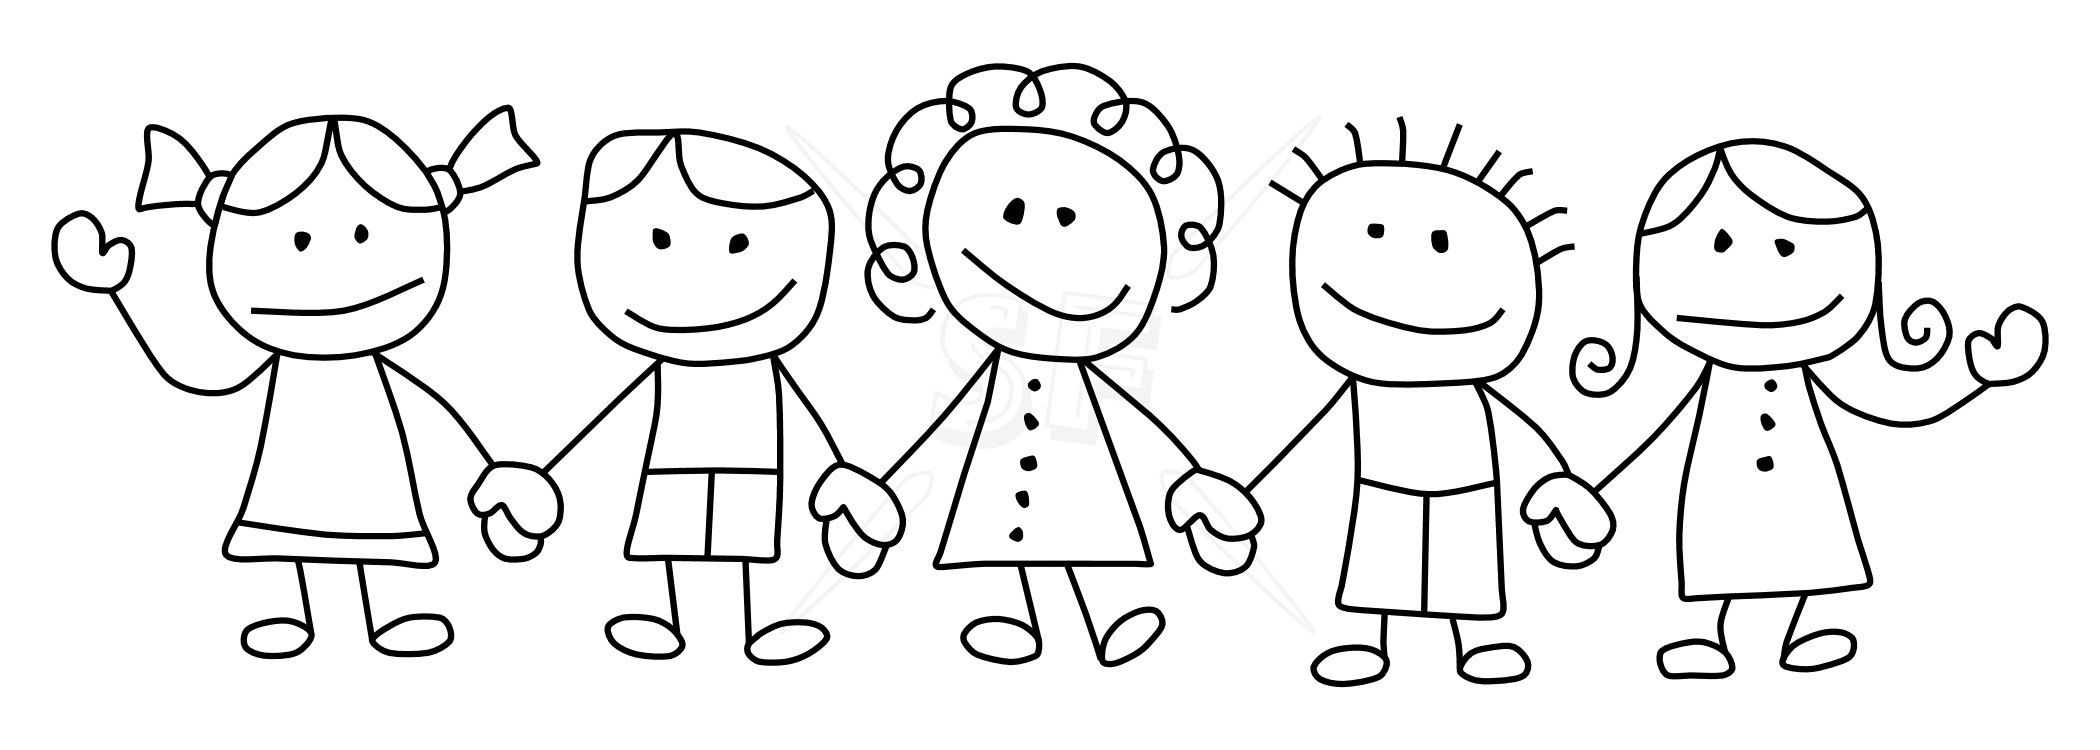 Children Holding Hands Clip Art Black And White Kind Of Letters Download Free Best Quality On Clipart Email Clip Art Stick Figures Children Holding Hands